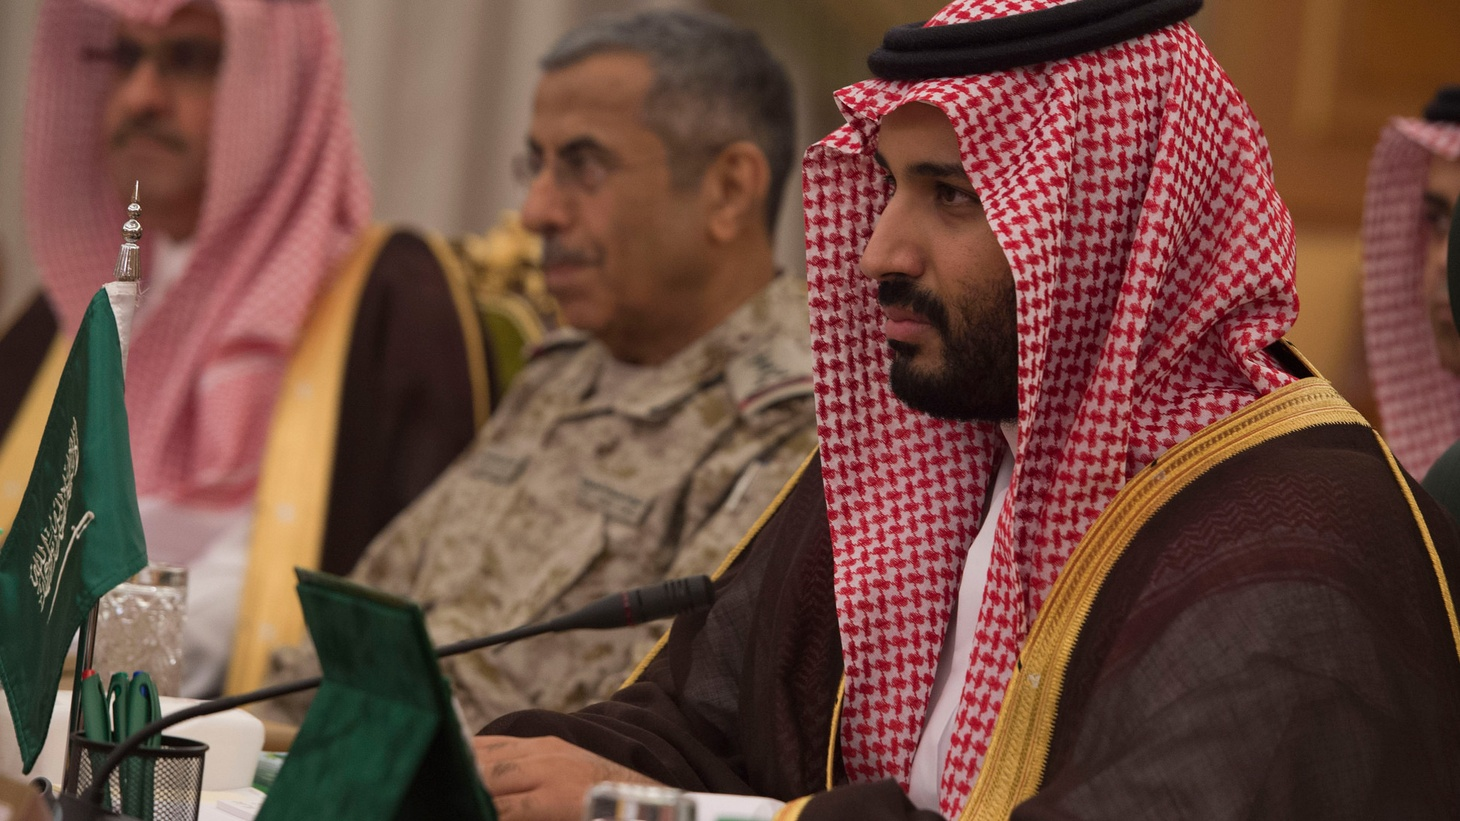 America's long-time alliance with Saudi Arabia is fraying at the edges. There's the nuclear deal with Iran, Saudi aggression in Yemen and the long-time denial of human rights. Now a brash new Saudi leader is proposing major changes. We hear what the future might hold.